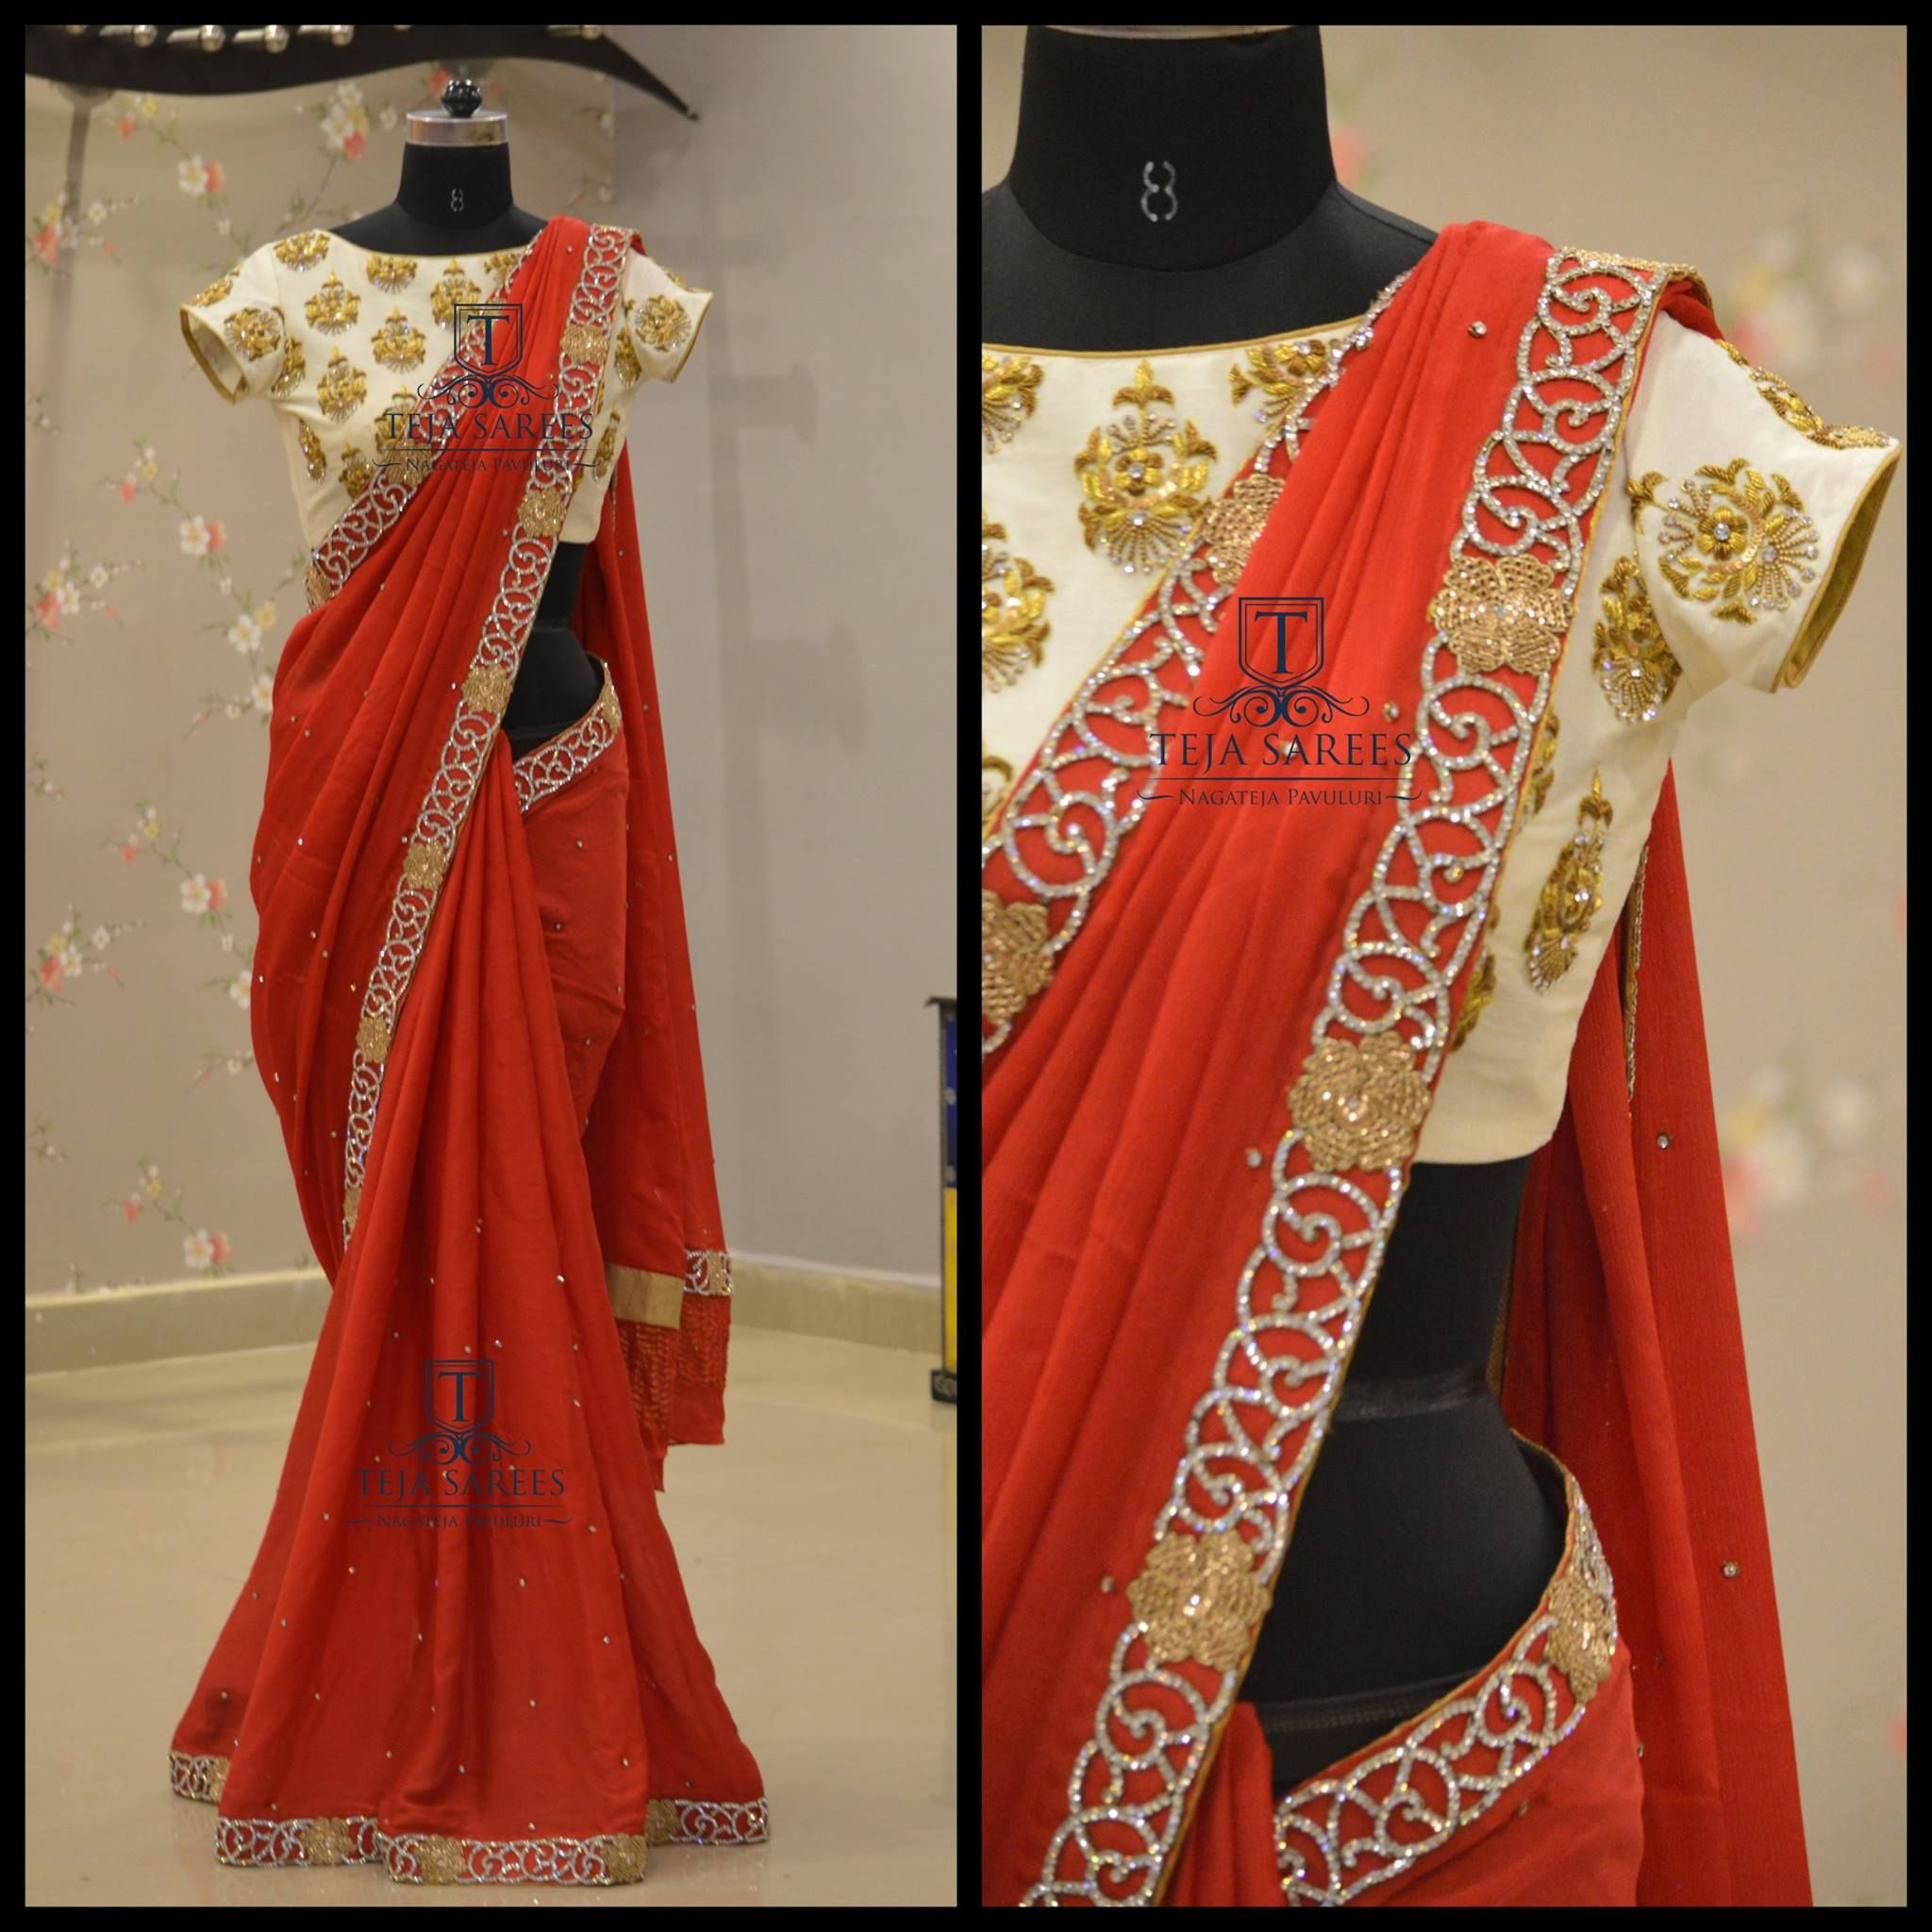 Fancy Lights Shops In Hyderabad: Teja Sarees. Hyderabad. Phone : 8790382382. Email